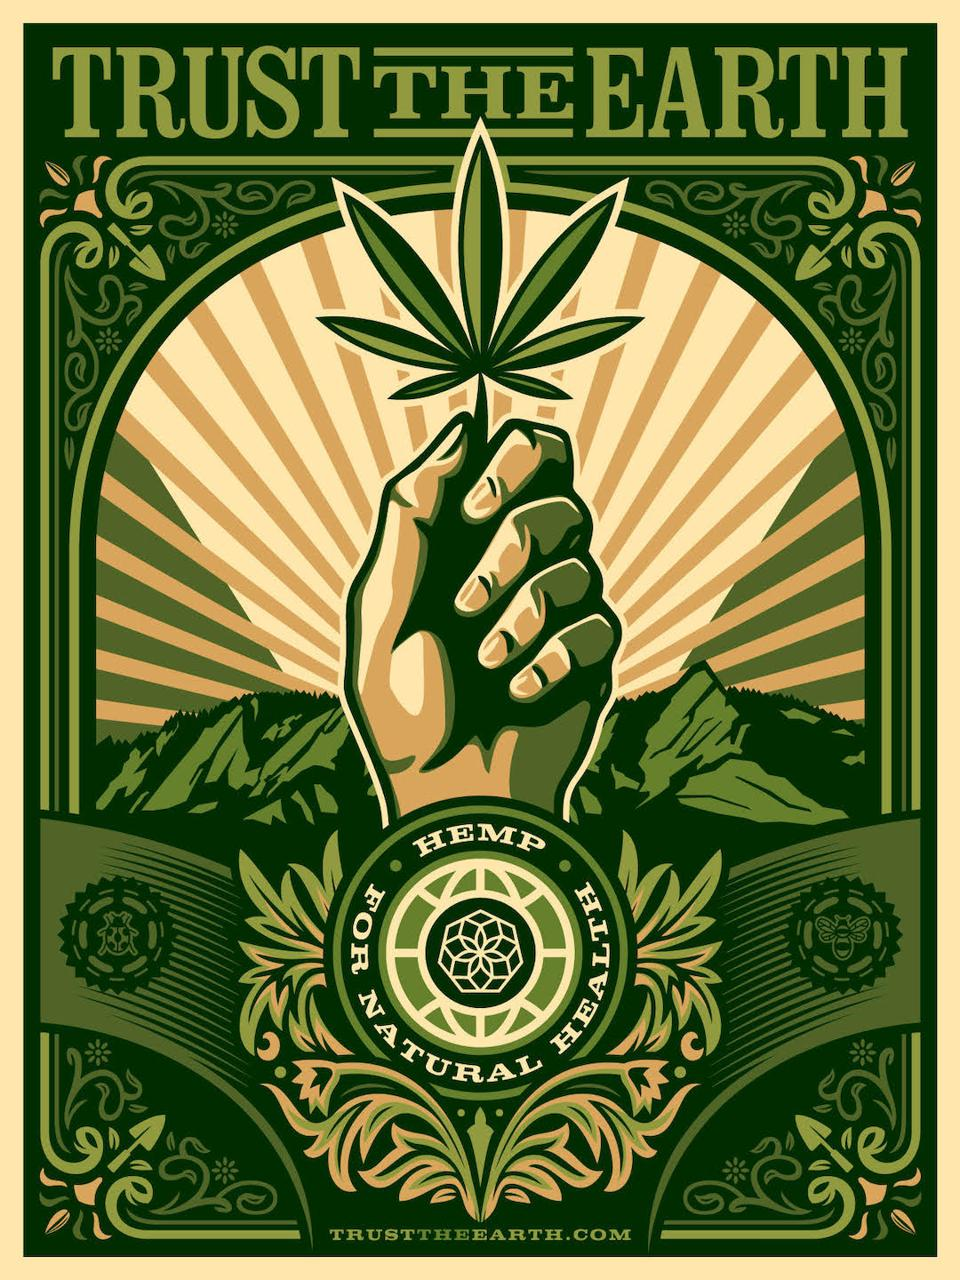 Studio Number One, Shepard Fairey, Charlotte's Web, Hemp, CBD